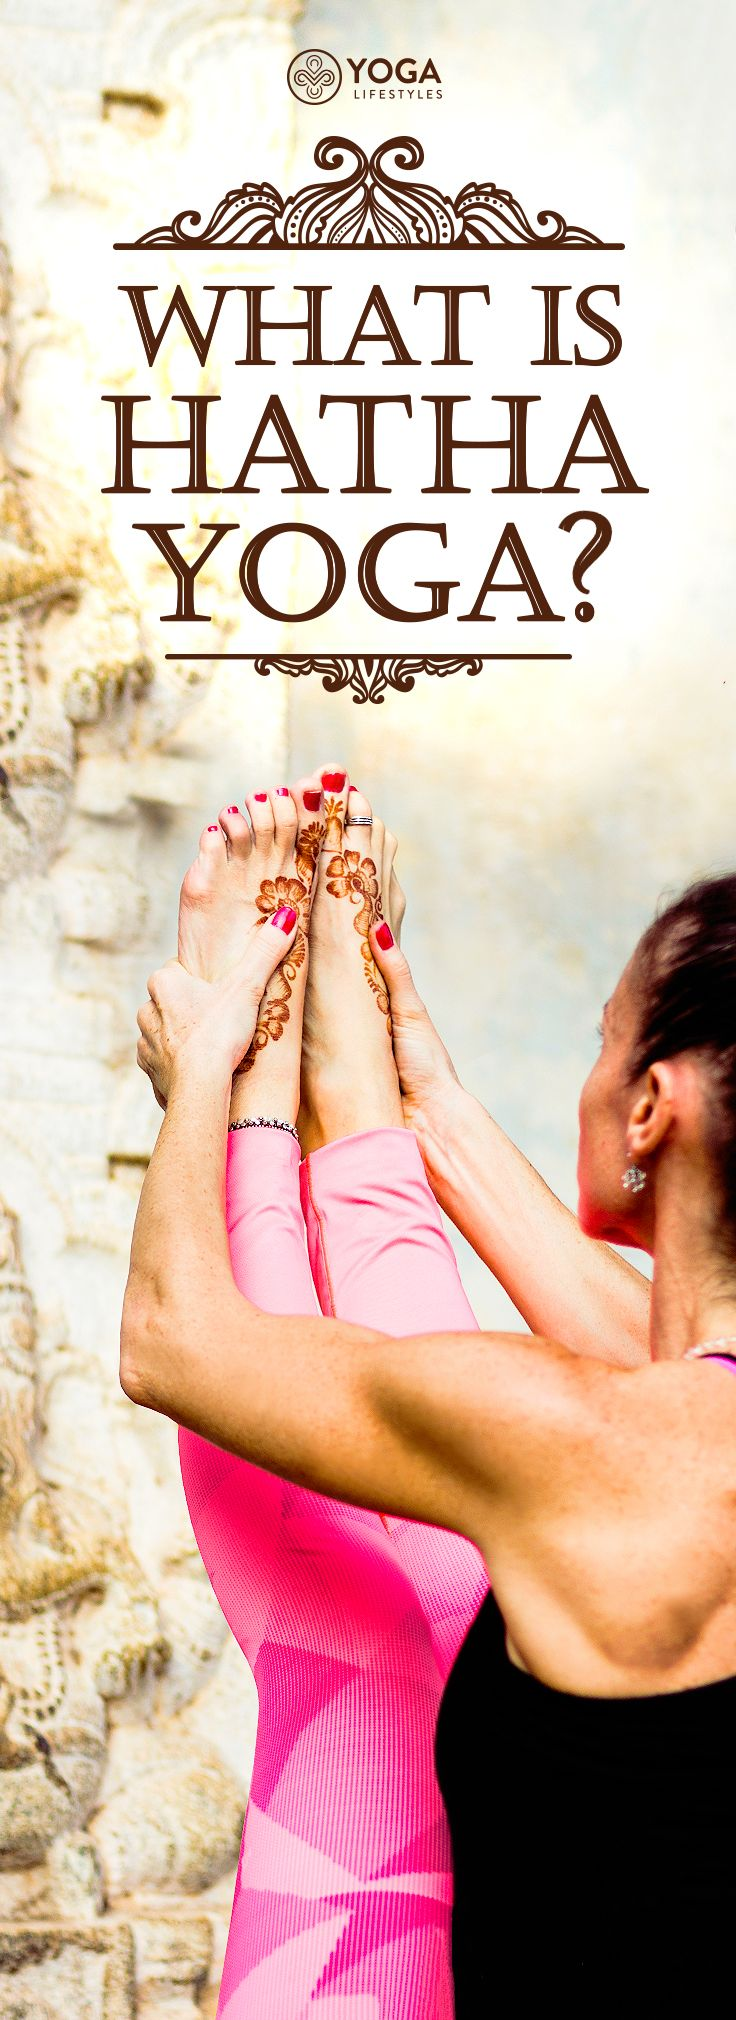 What is Hatha Yoga